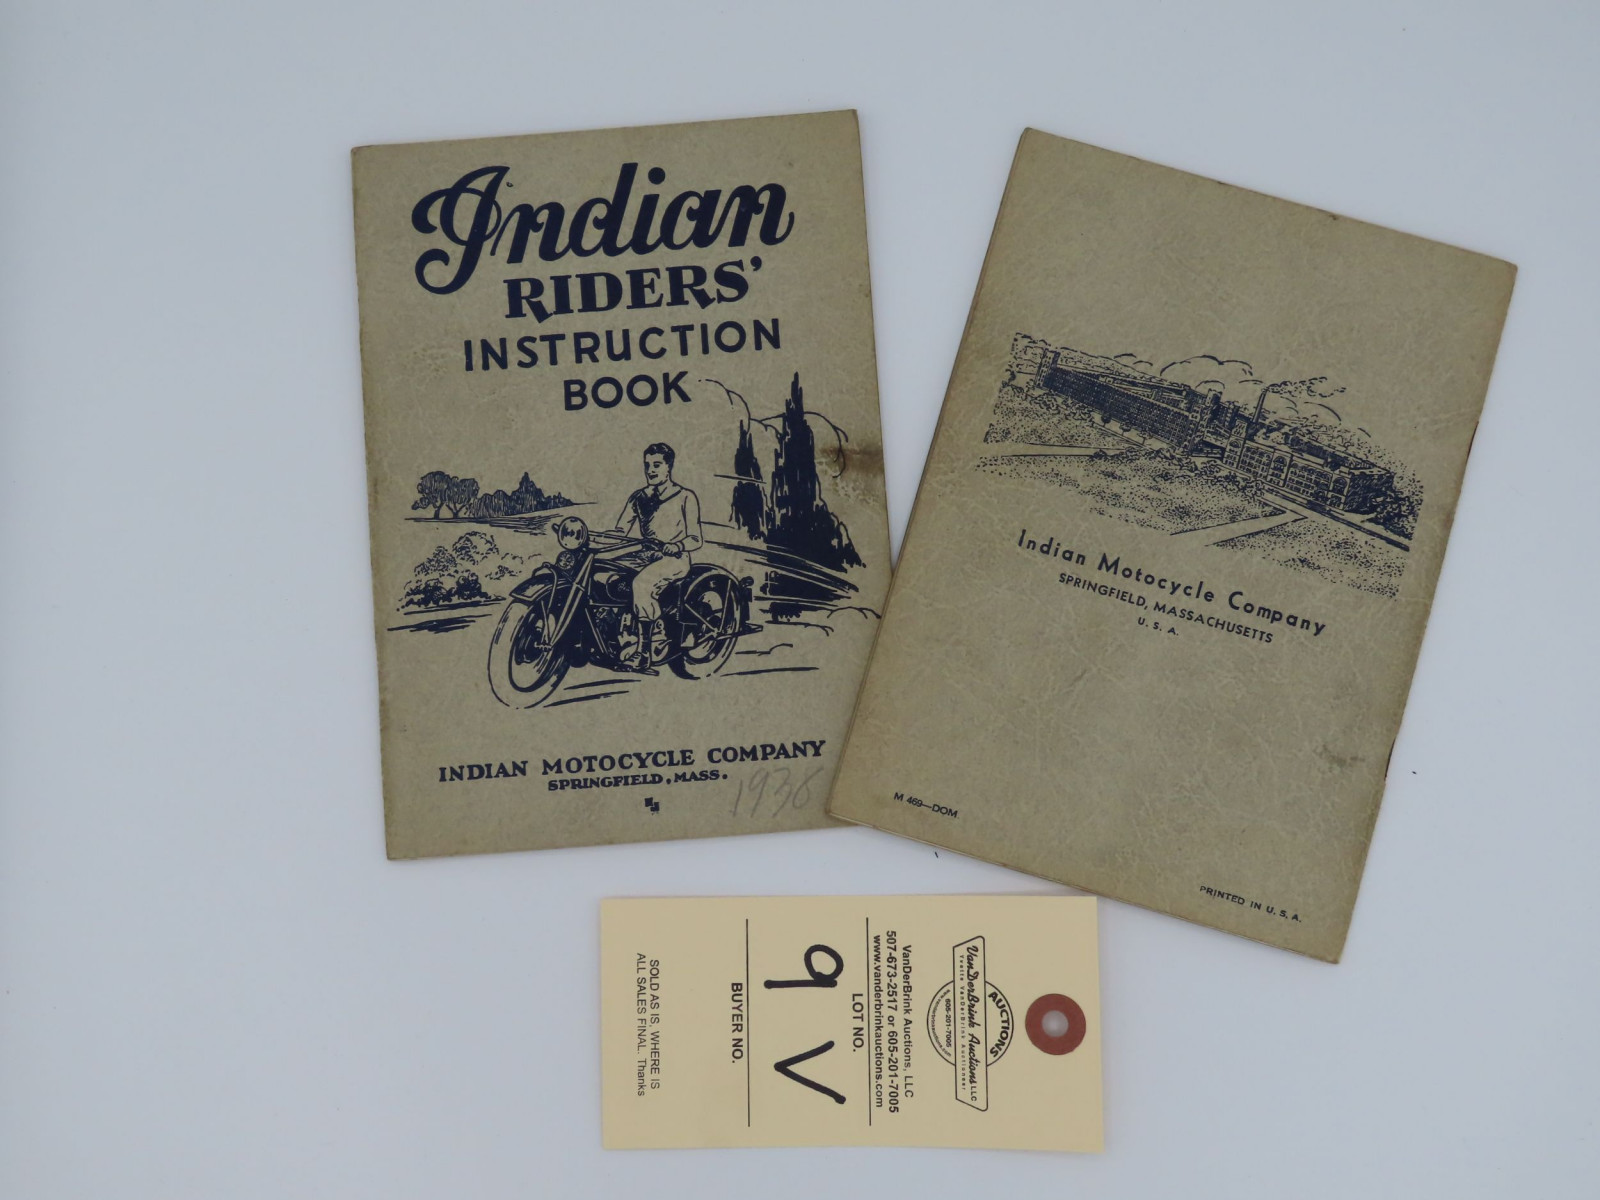 1938 Indian Riders' Instruction Book - Image 3